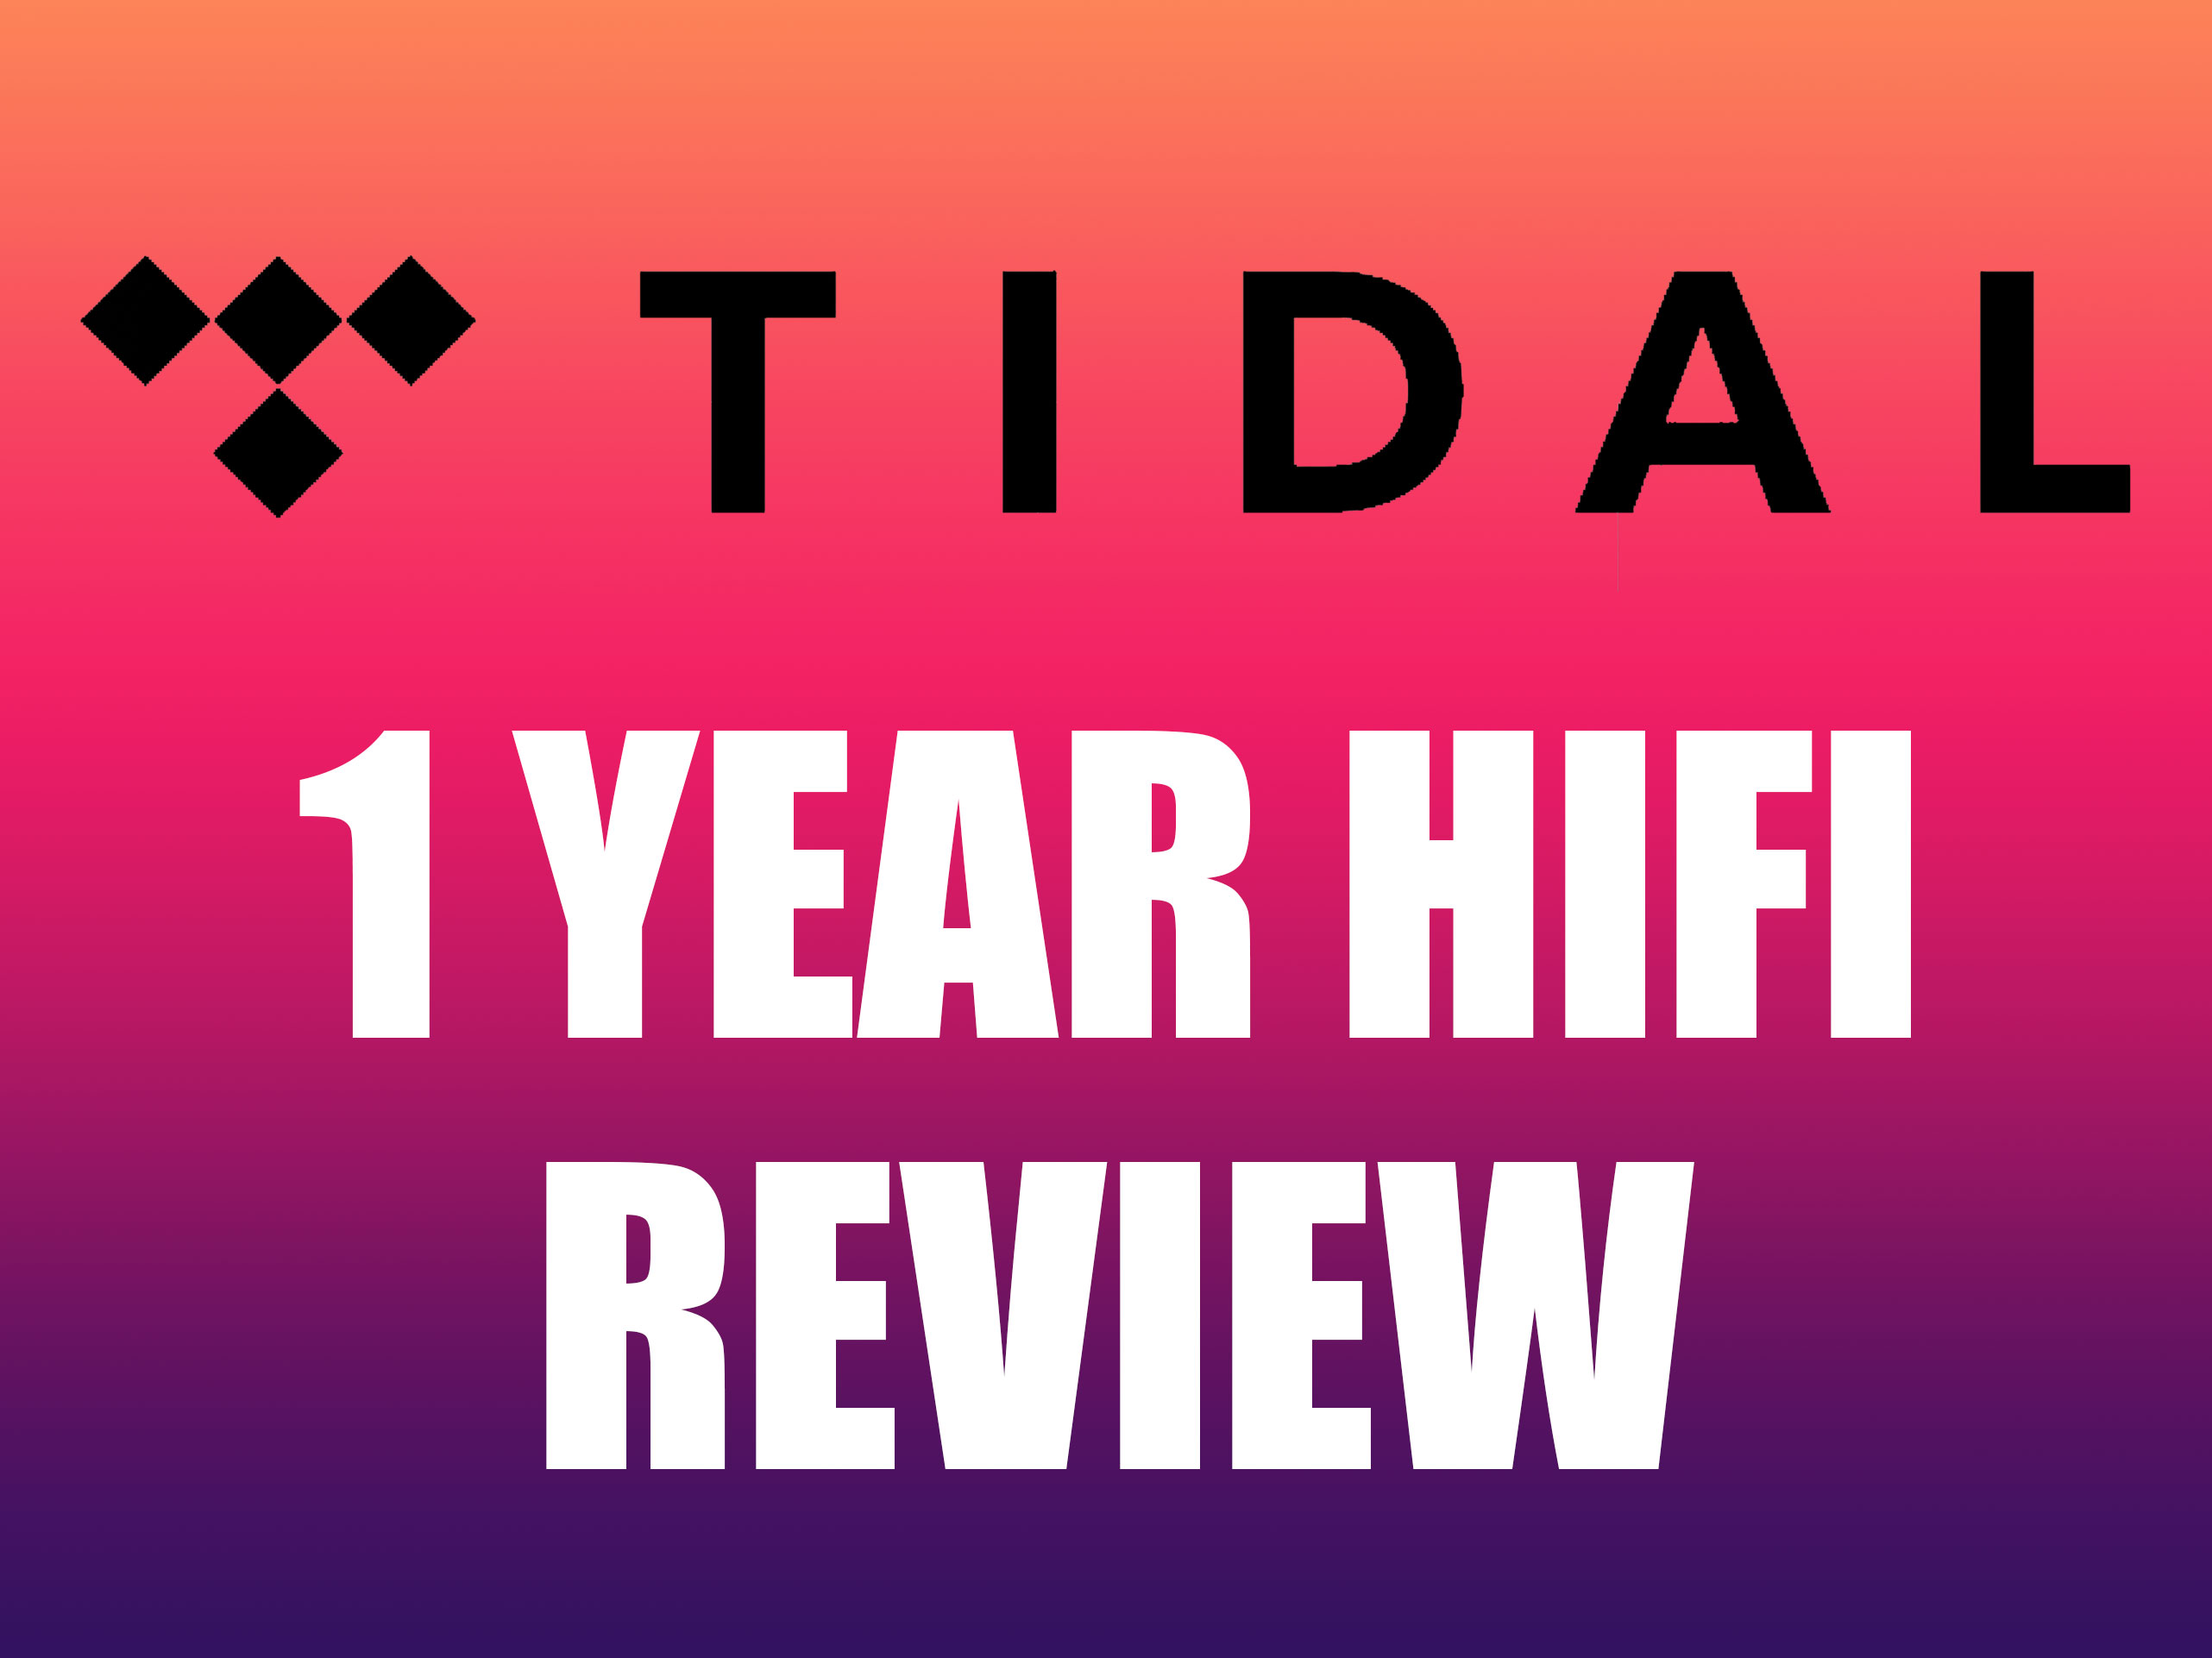 Tidal-review-featured